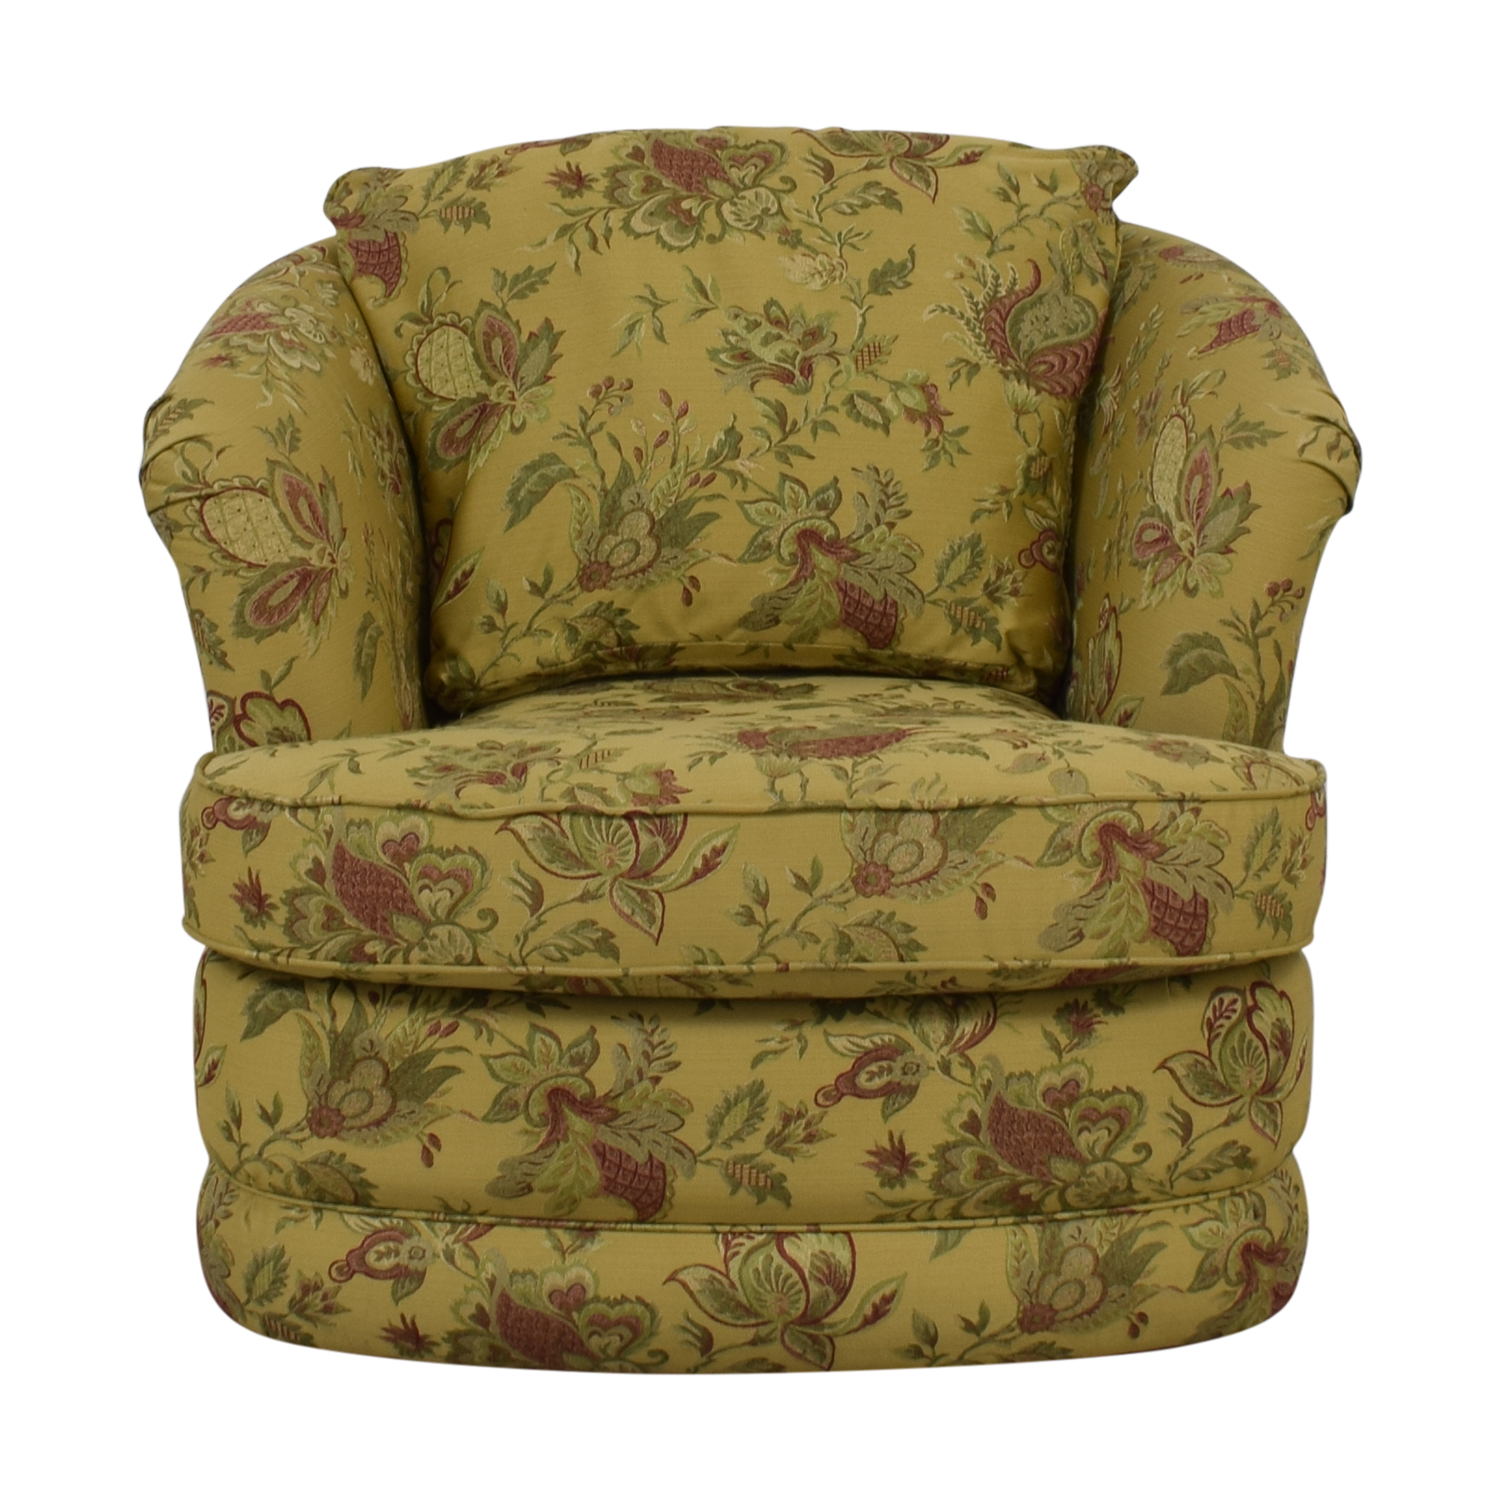 buy La-Z-Boy La-Z-Boy Fresco Premier Swivel Floral Accent Chair online